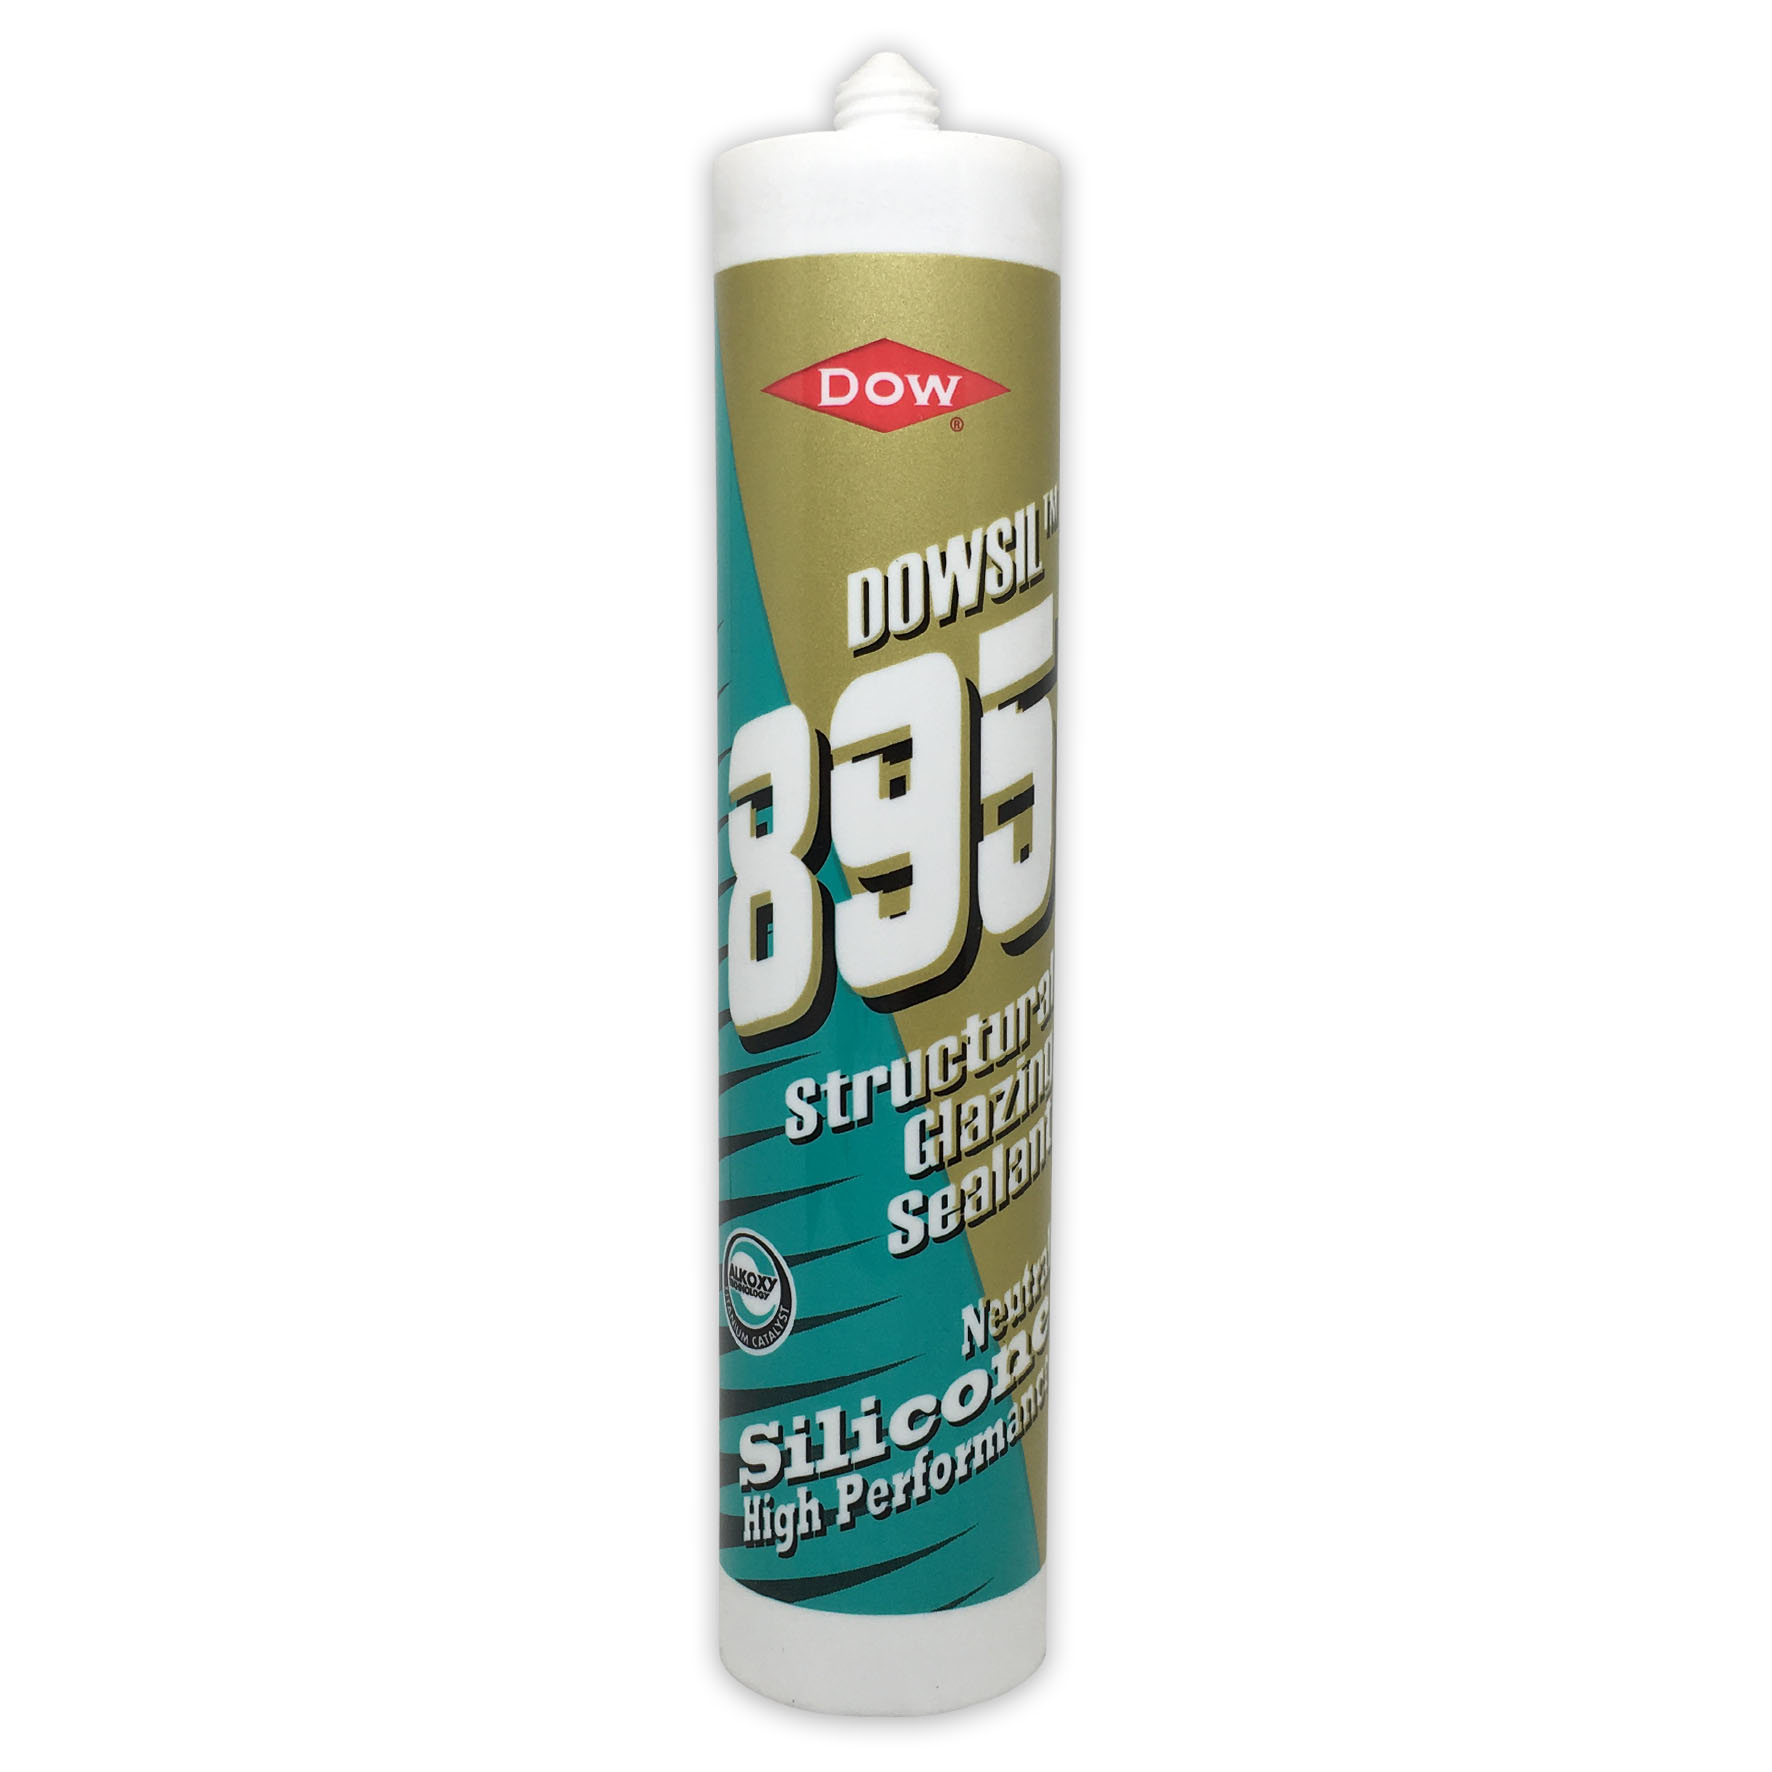 Dow Corning 895 Structural Glazing Silicone Sealant